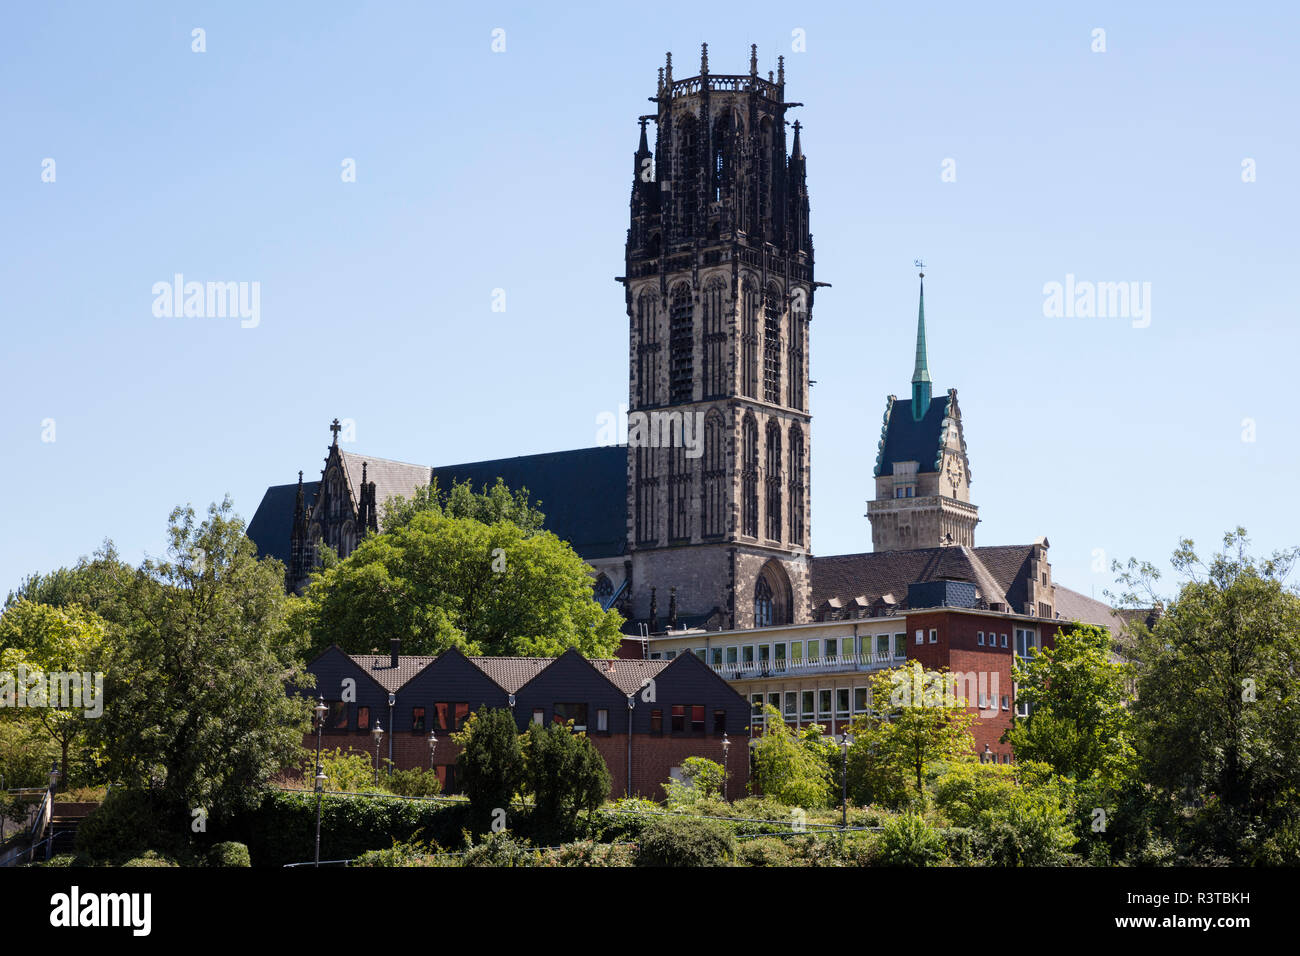 Germany, Duisburg, view to Salvator Church and town hall tower - Stock Image